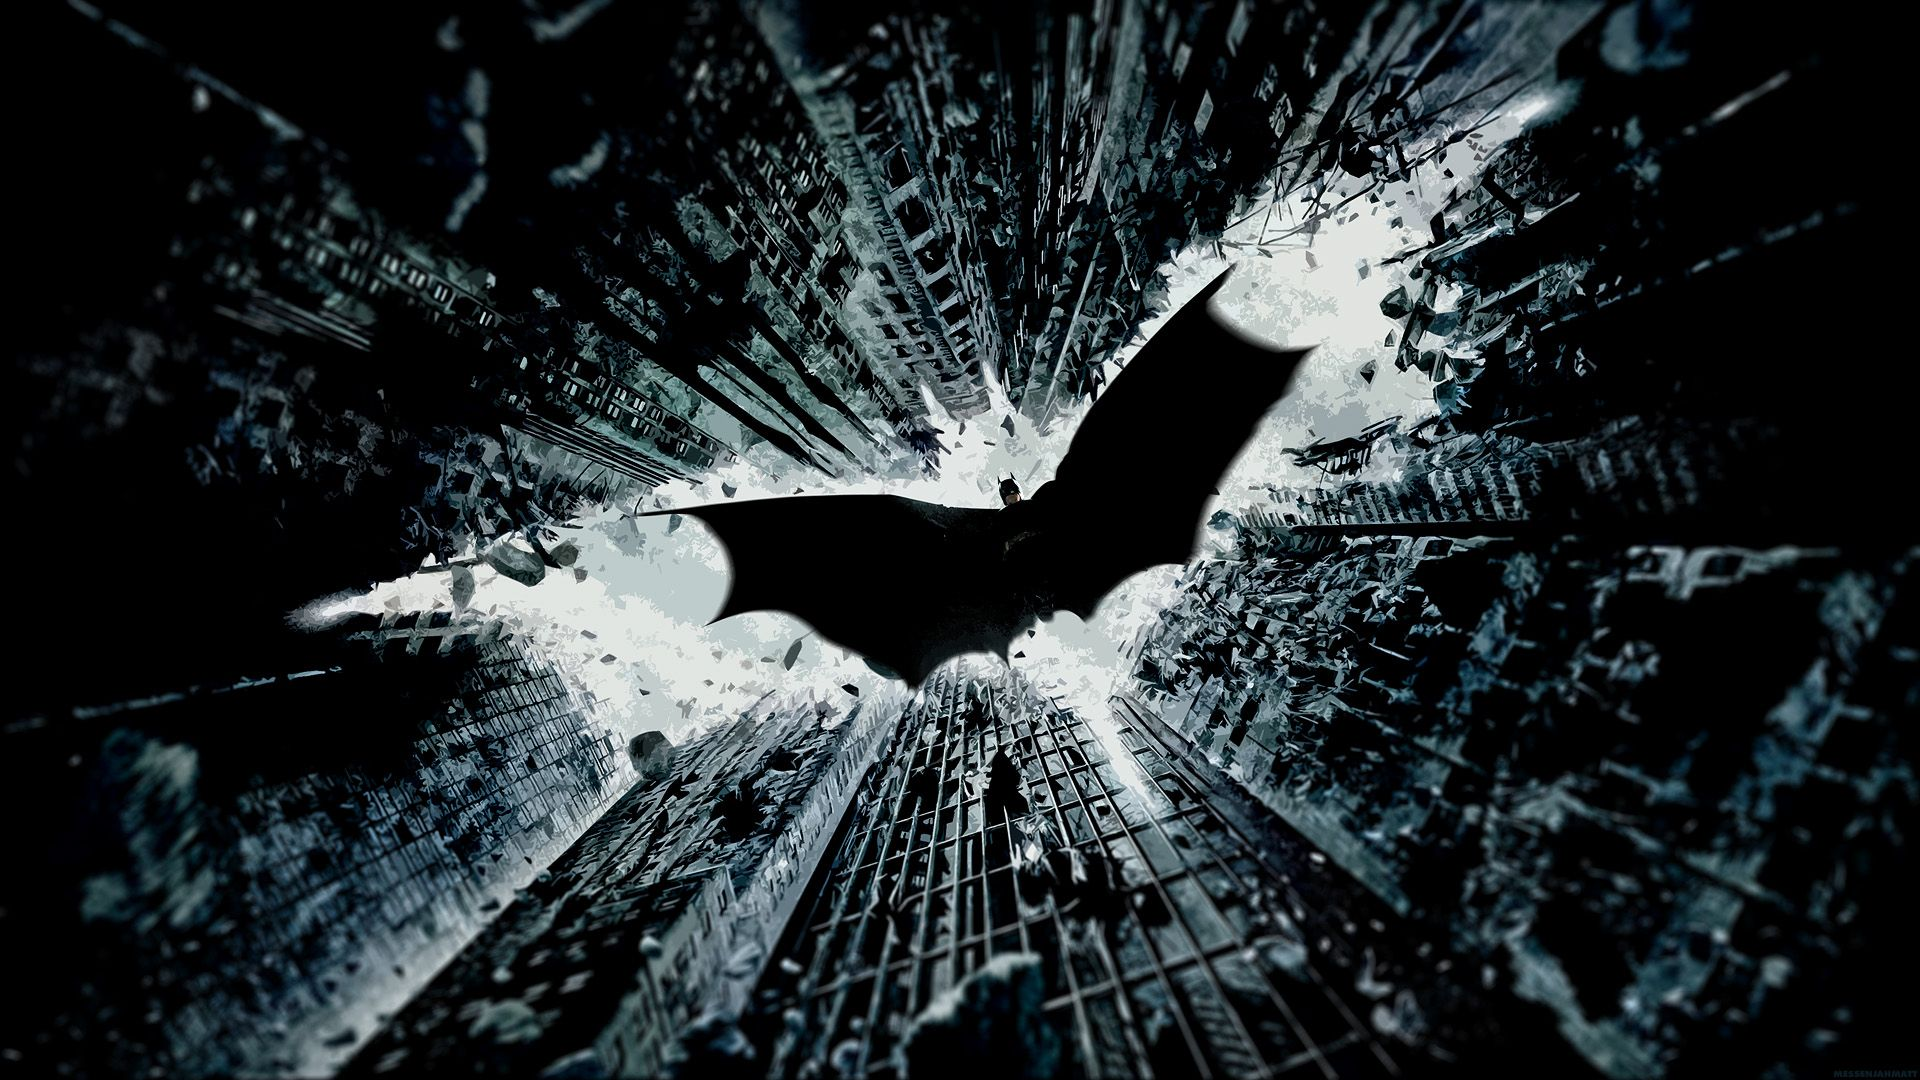 Batman The Dark Knight Rises Wallpaper Pictures To Like Or Share